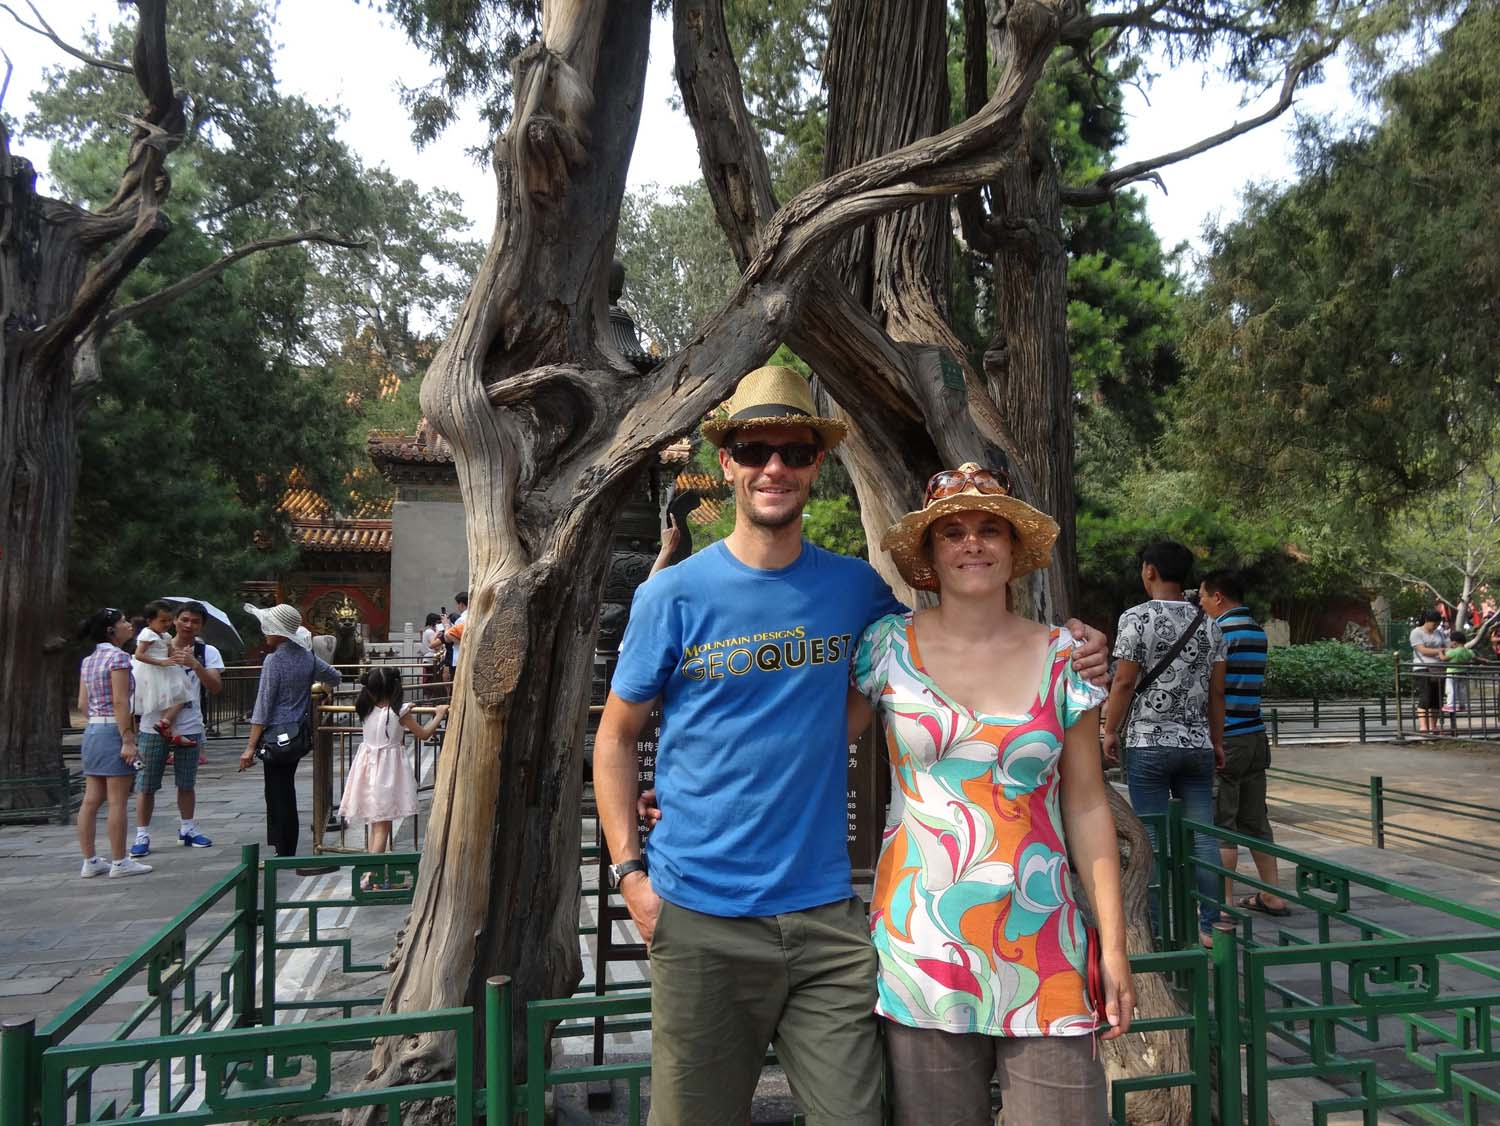 entwined trees, symbol of everlasting love in the Forbidden City